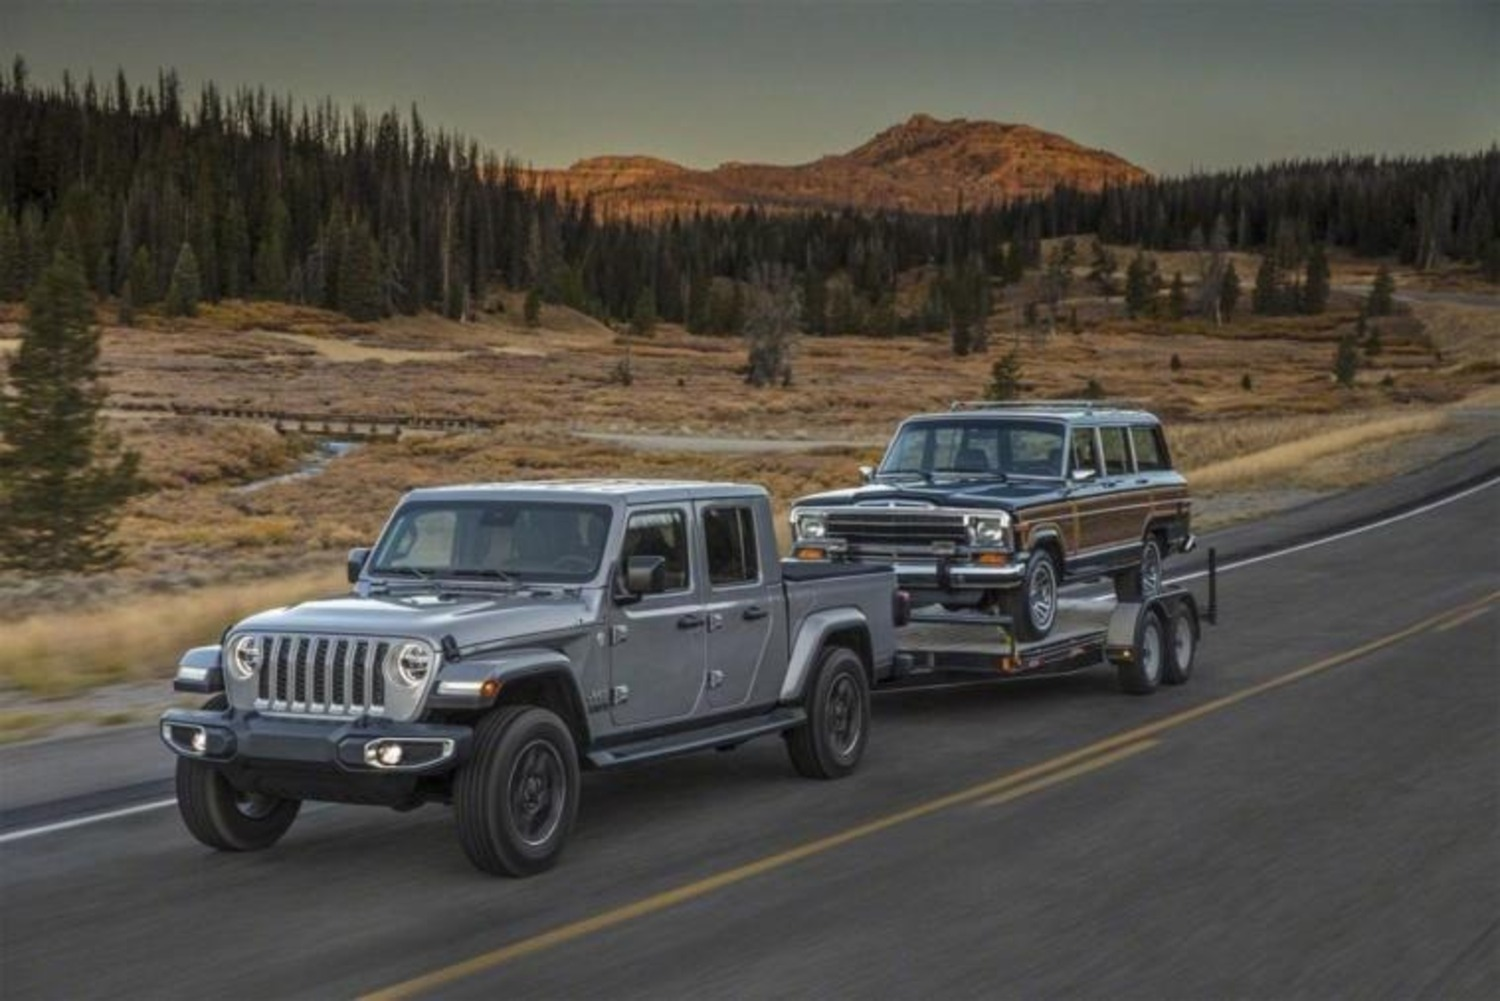 Jeep Gladiator: made in Ohio, presentato a L.A. e pronto a sbarcare in UE [video]